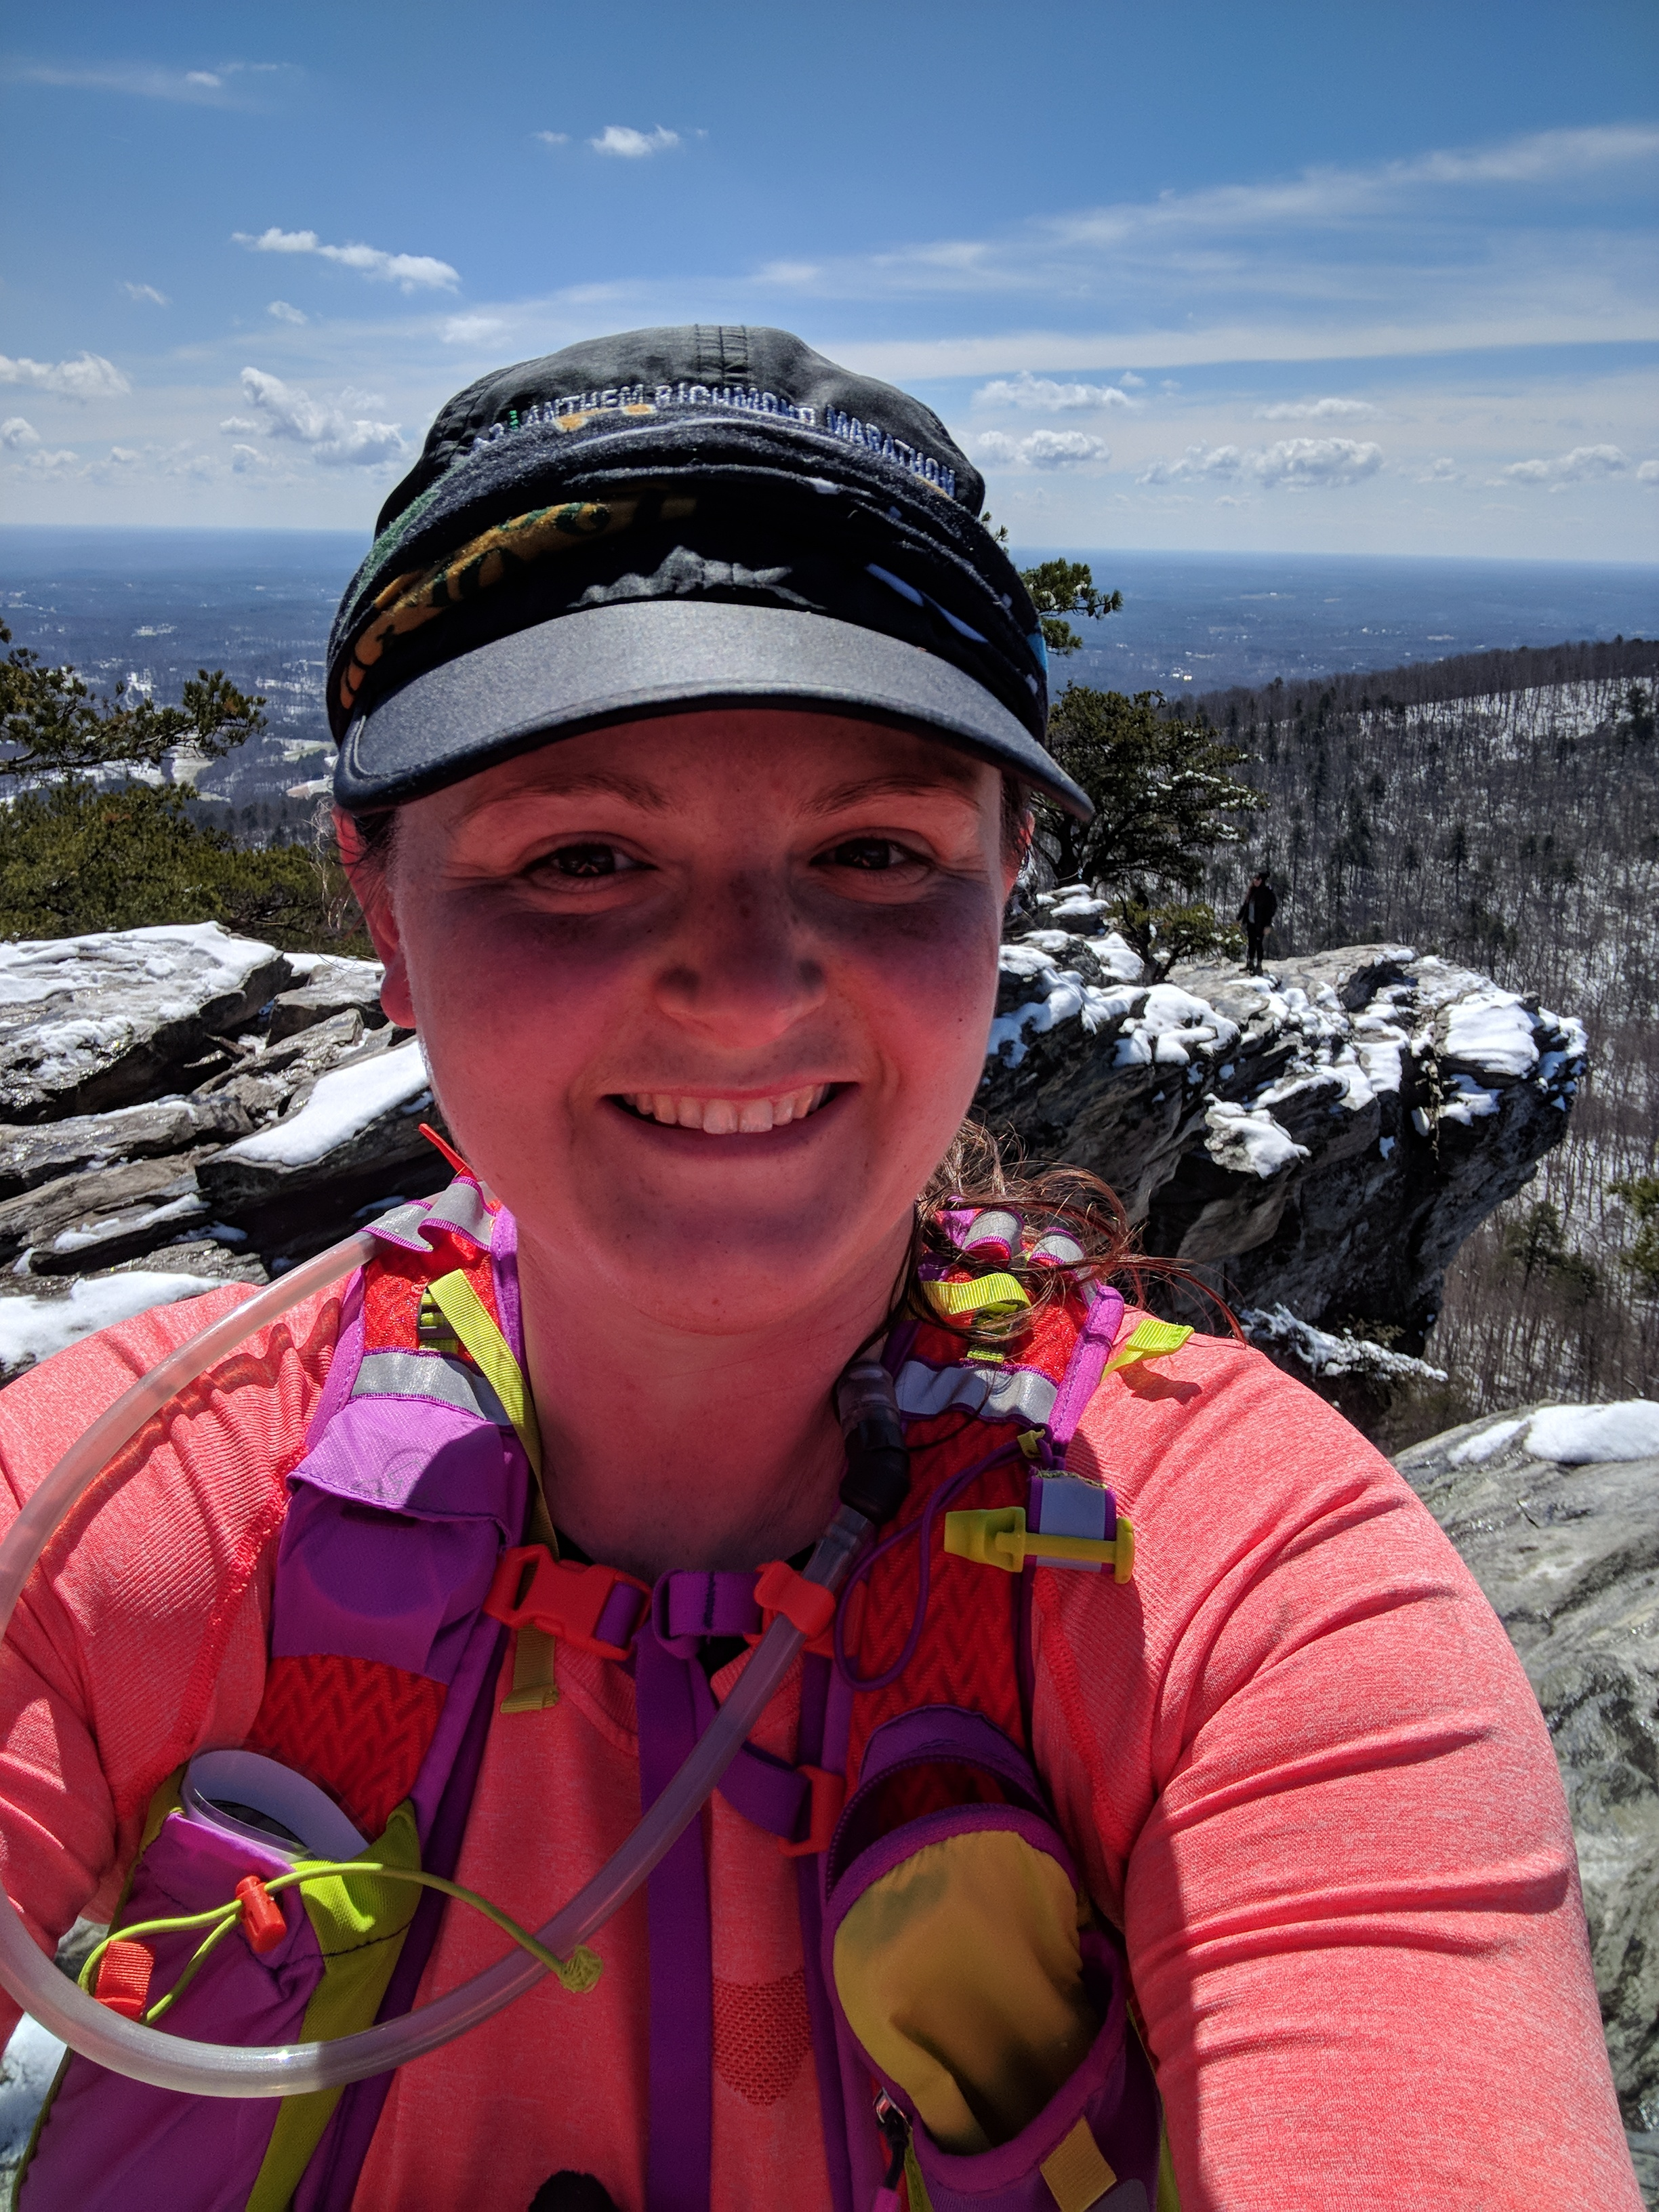 March Fleet Feet runventure at Hanging Rock in the snow